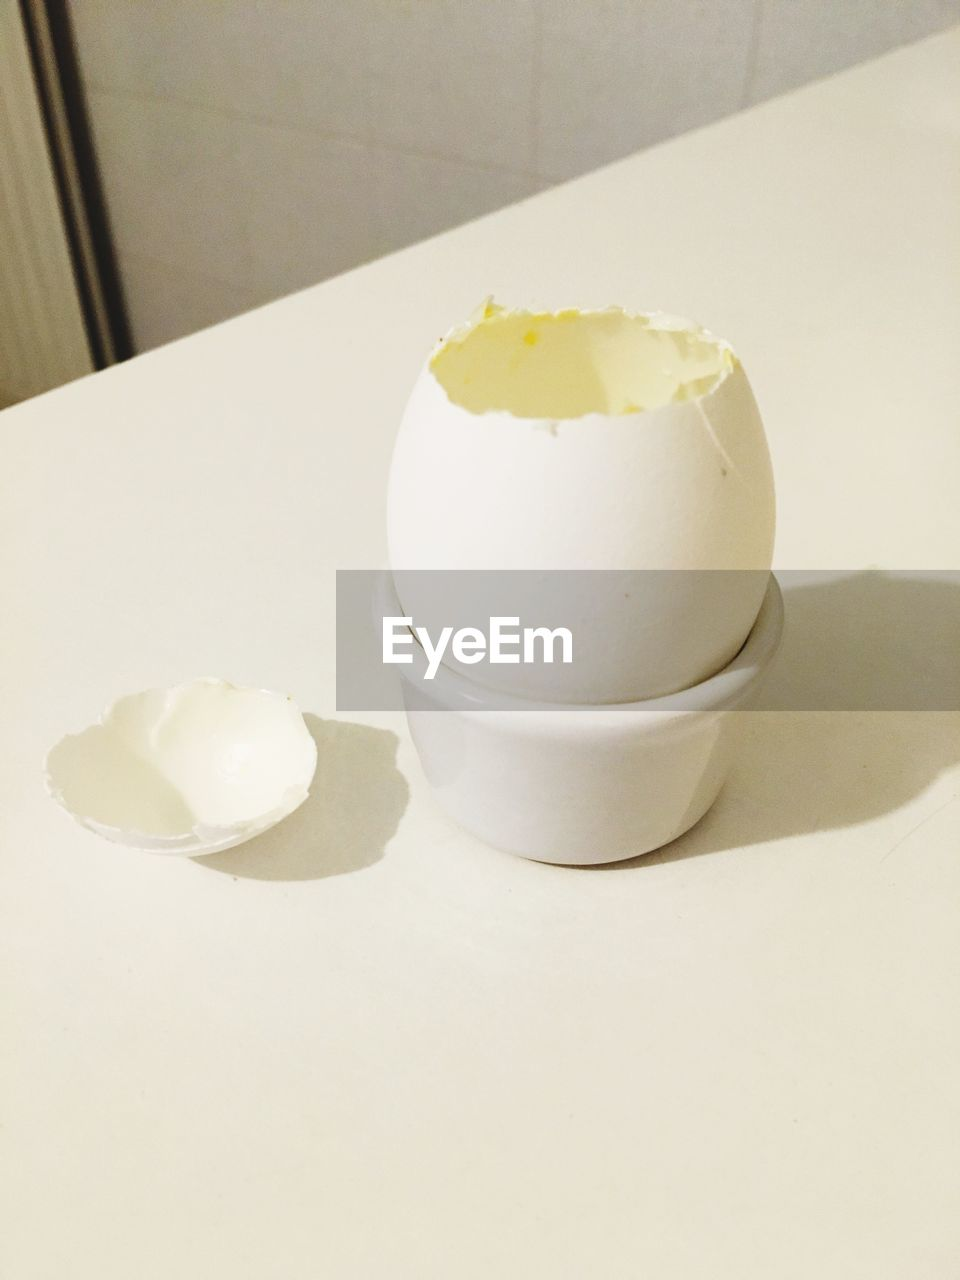 egg, food and drink, egg yolk, boiled egg, white color, healthy eating, food, indoors, eggcup, eggshell, breakfast, table, freshness, no people, yellow, boiled, close-up, day